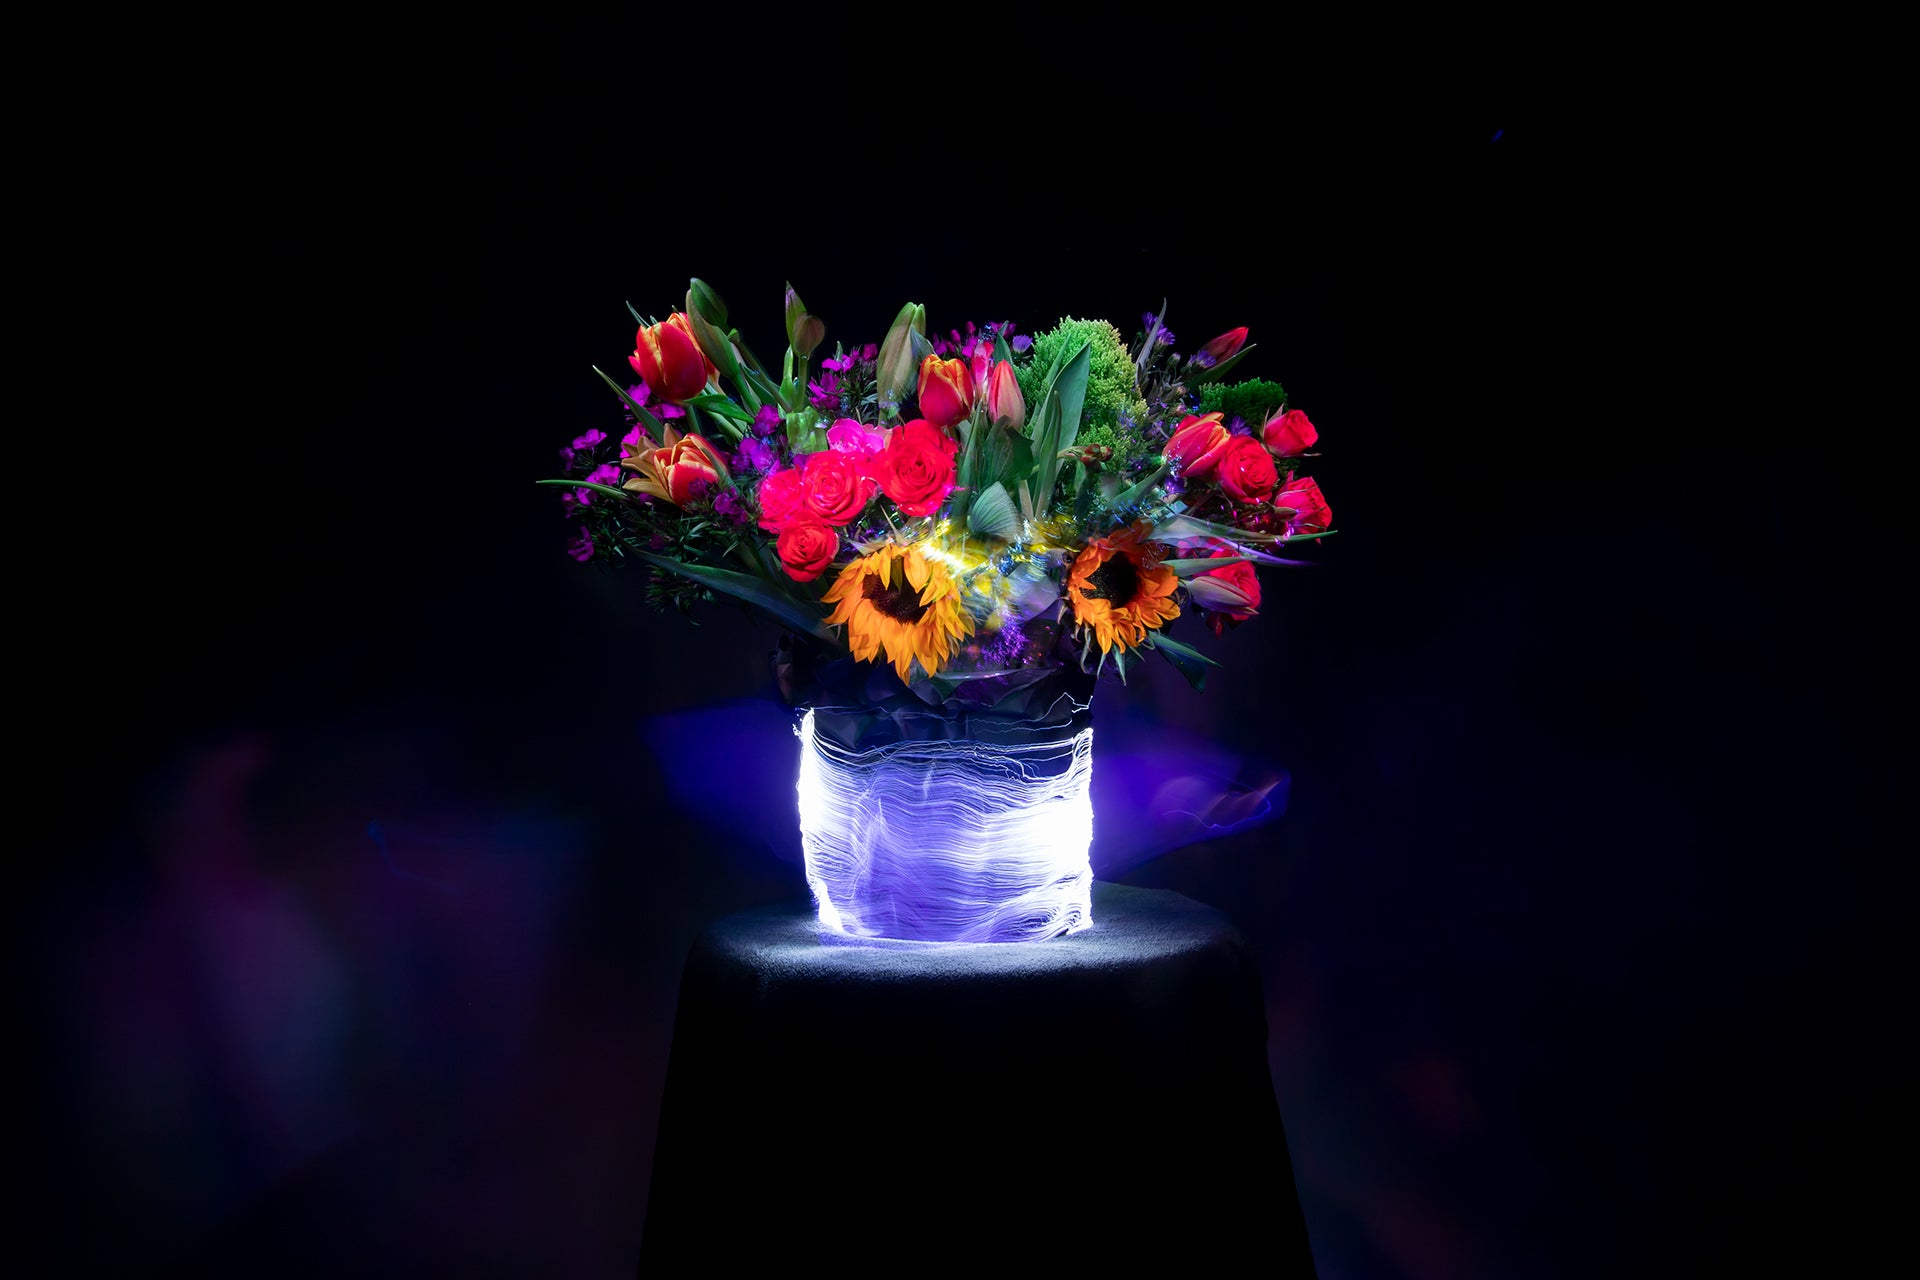 Light Painting of Flowers with Fiber Optic Light Painting Brushes